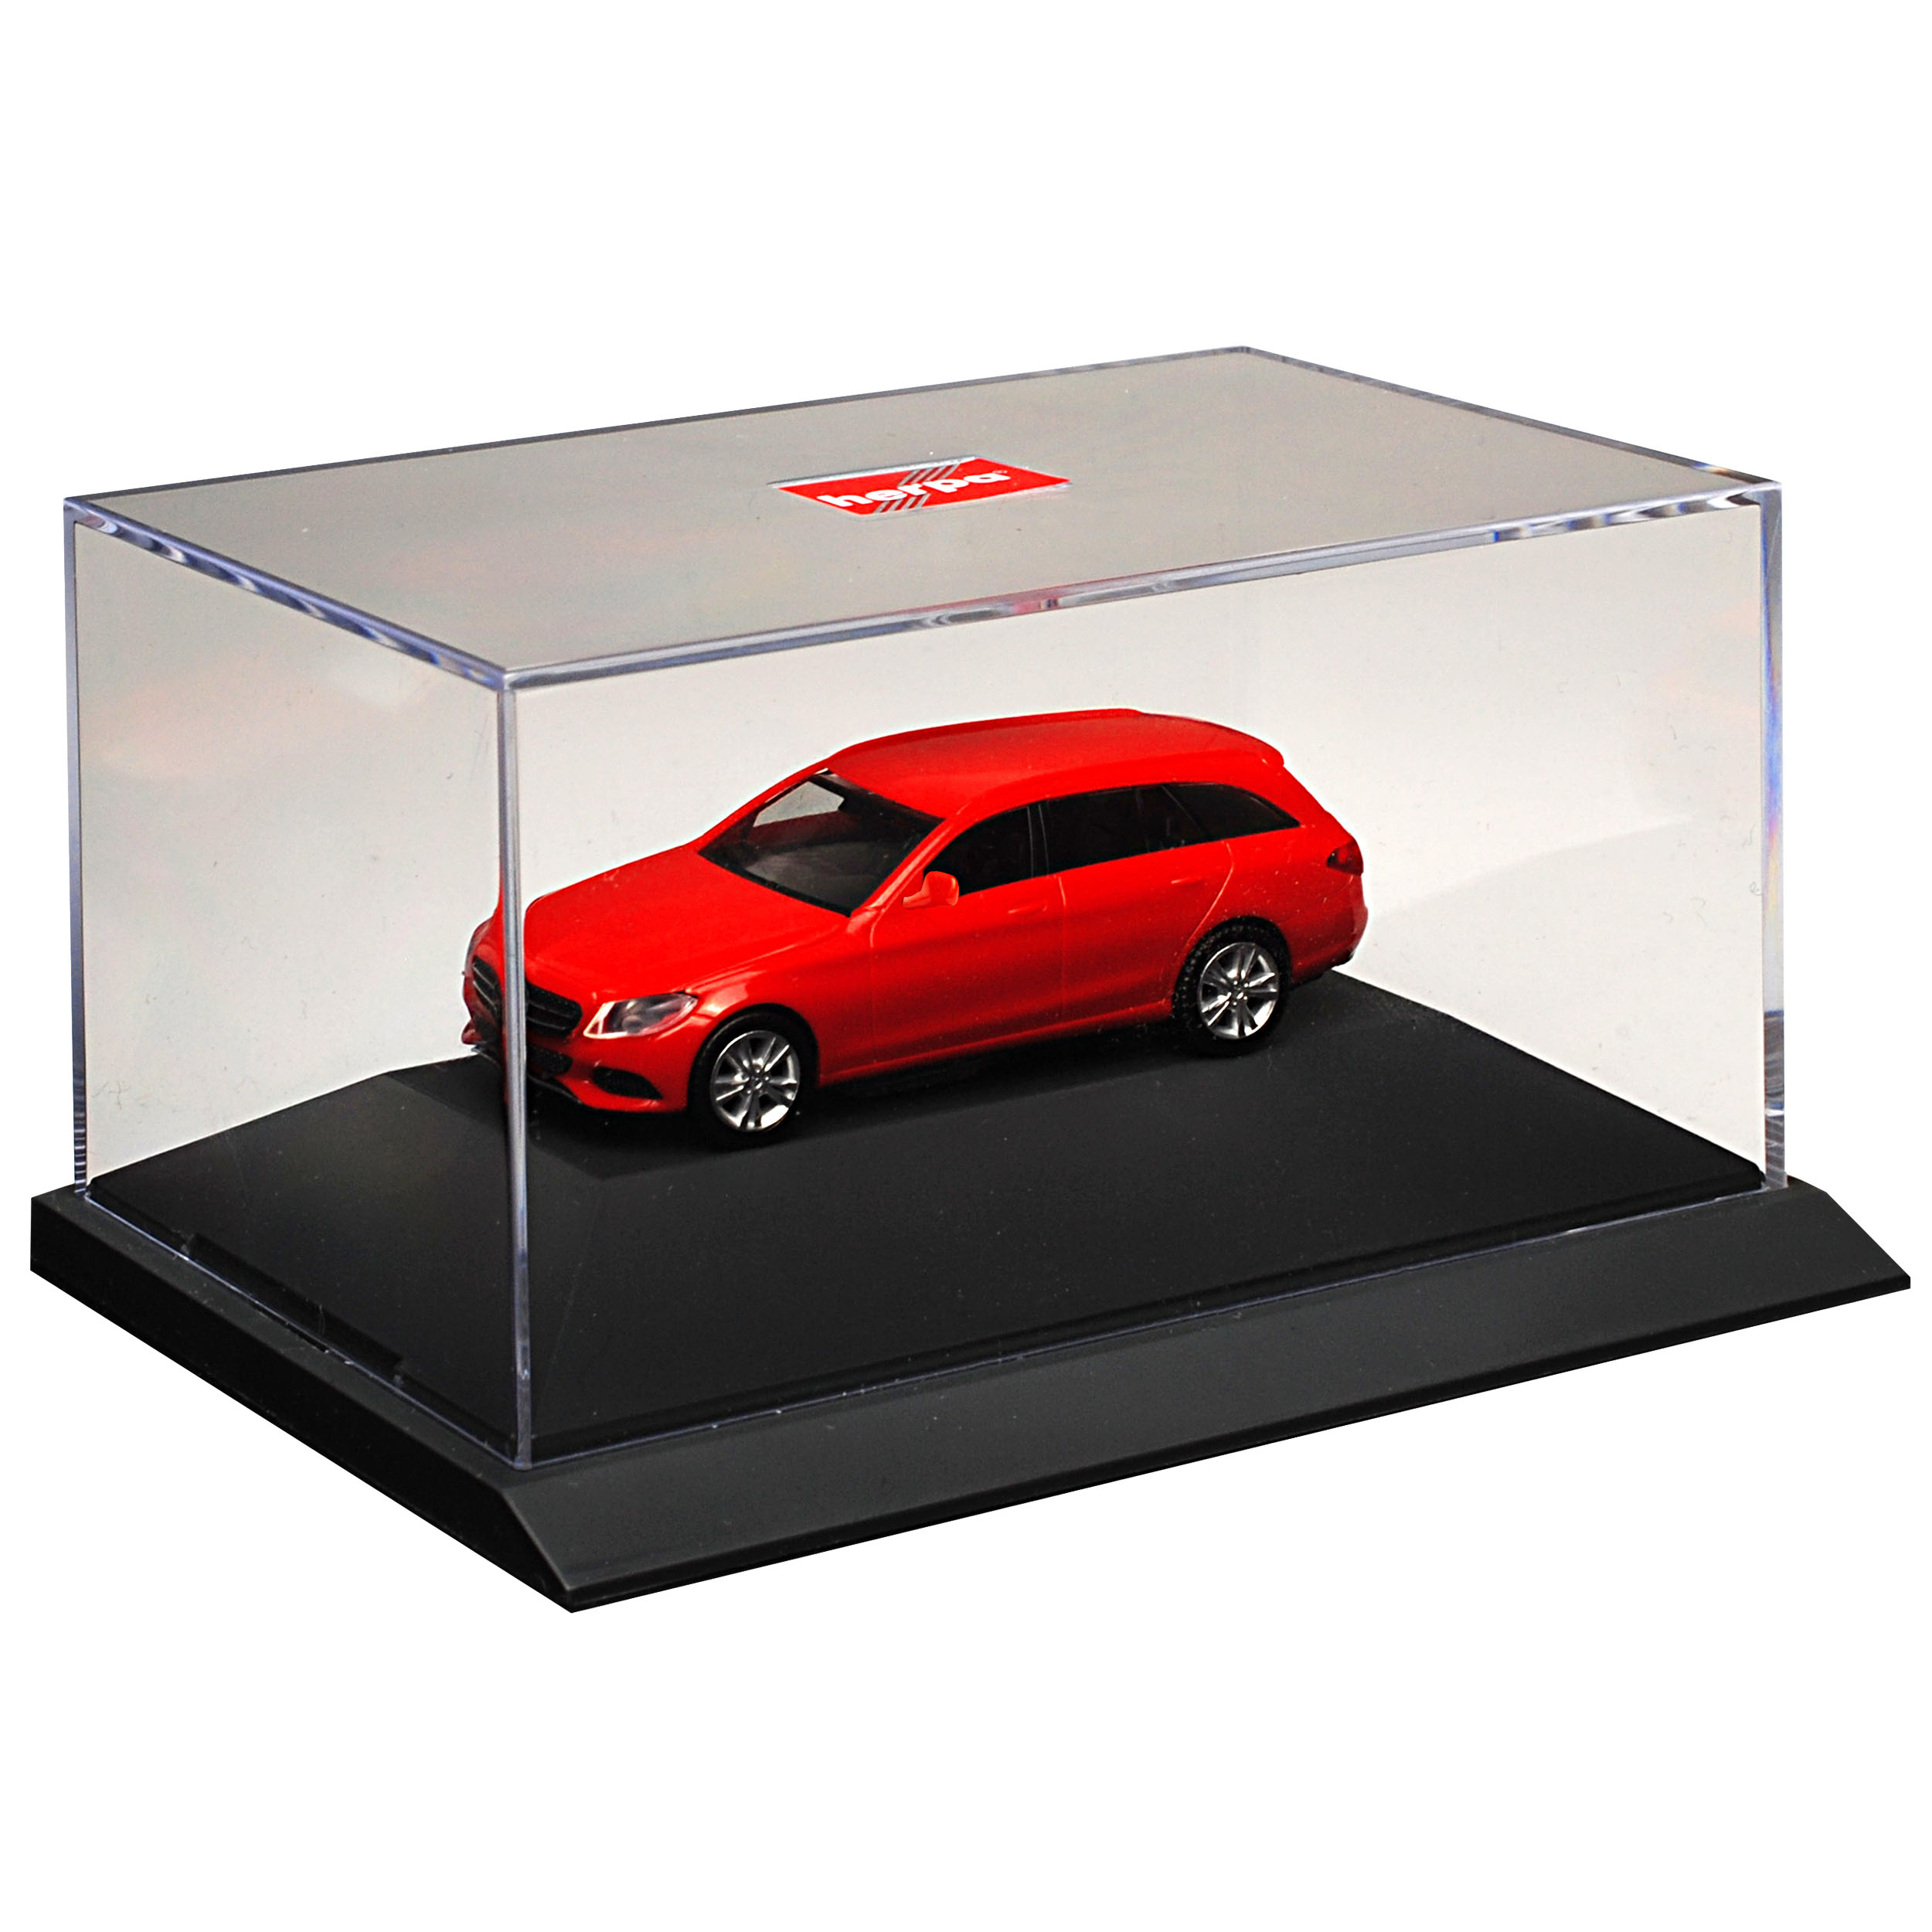 Mercedes-Benz-Classe-C-Modele-T-W205-Break-Rouge-Ab-2014-Kit-Kit-avec-Socle miniature 3